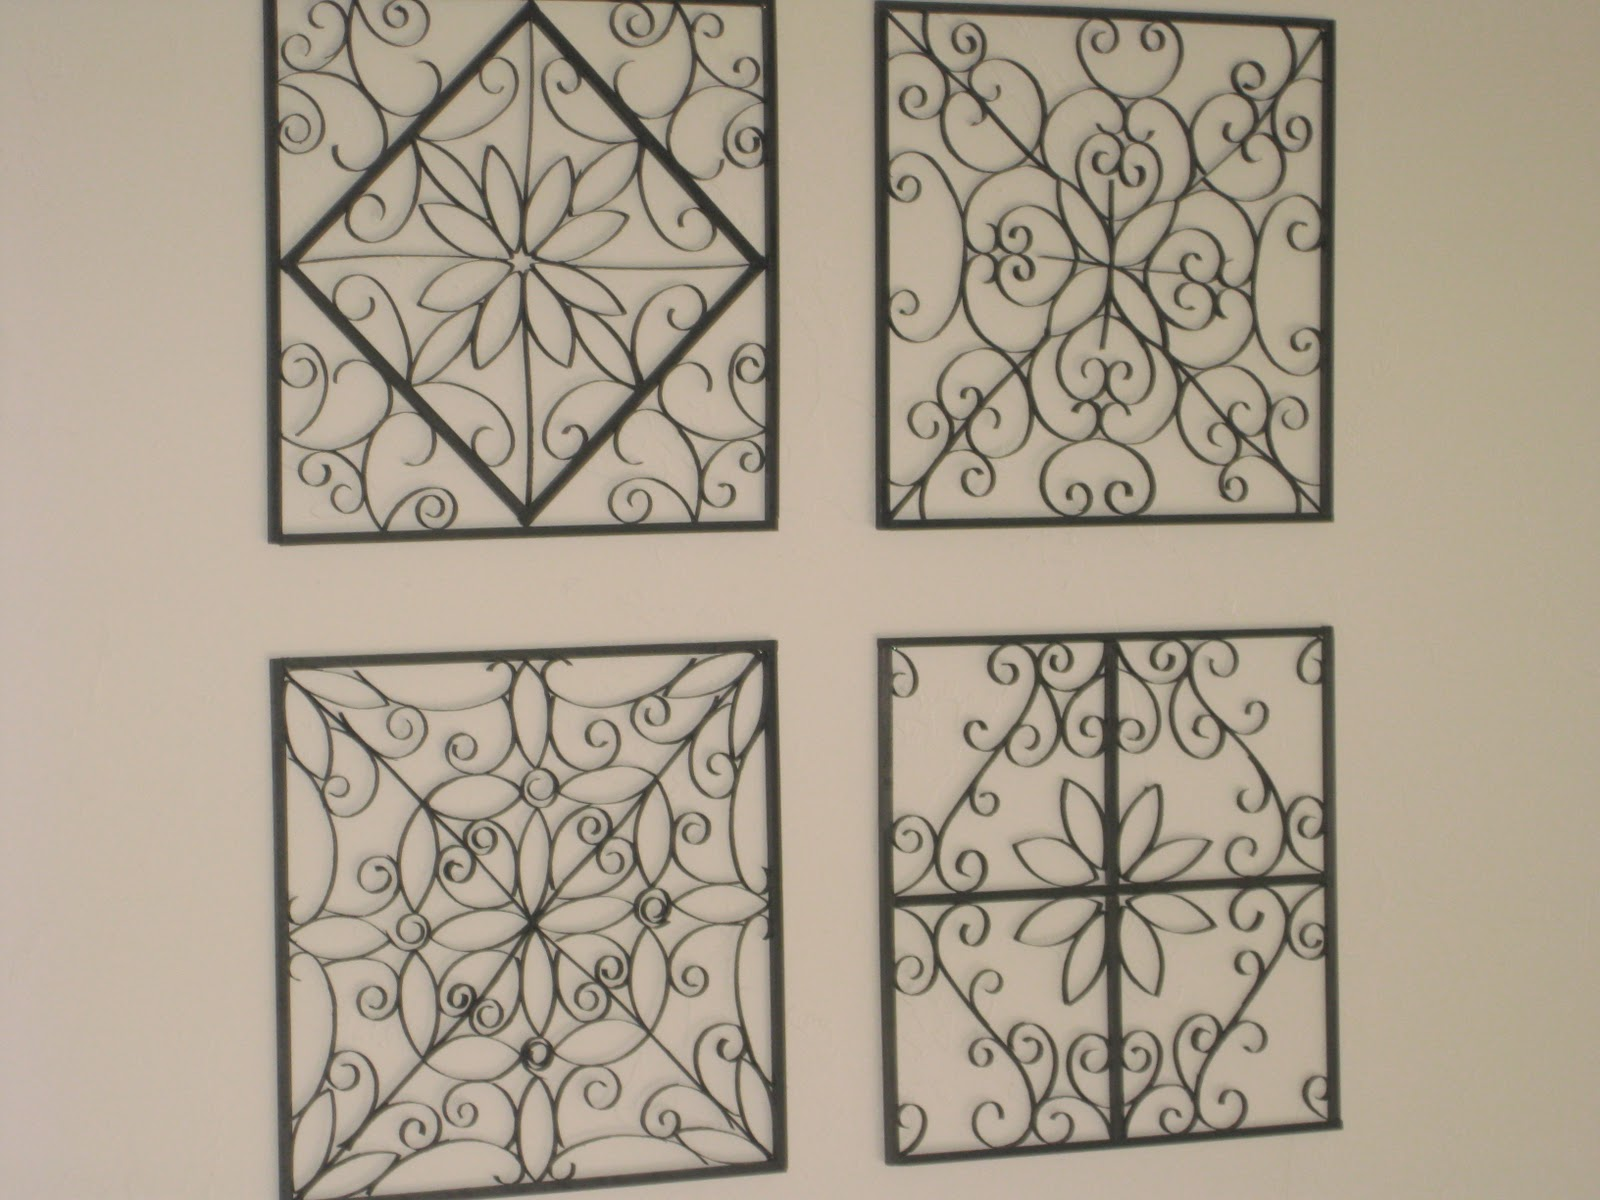 The wilkins family faux metal wall art tutorial faux metal wall art tutorial save those toilet paper amipublicfo Images